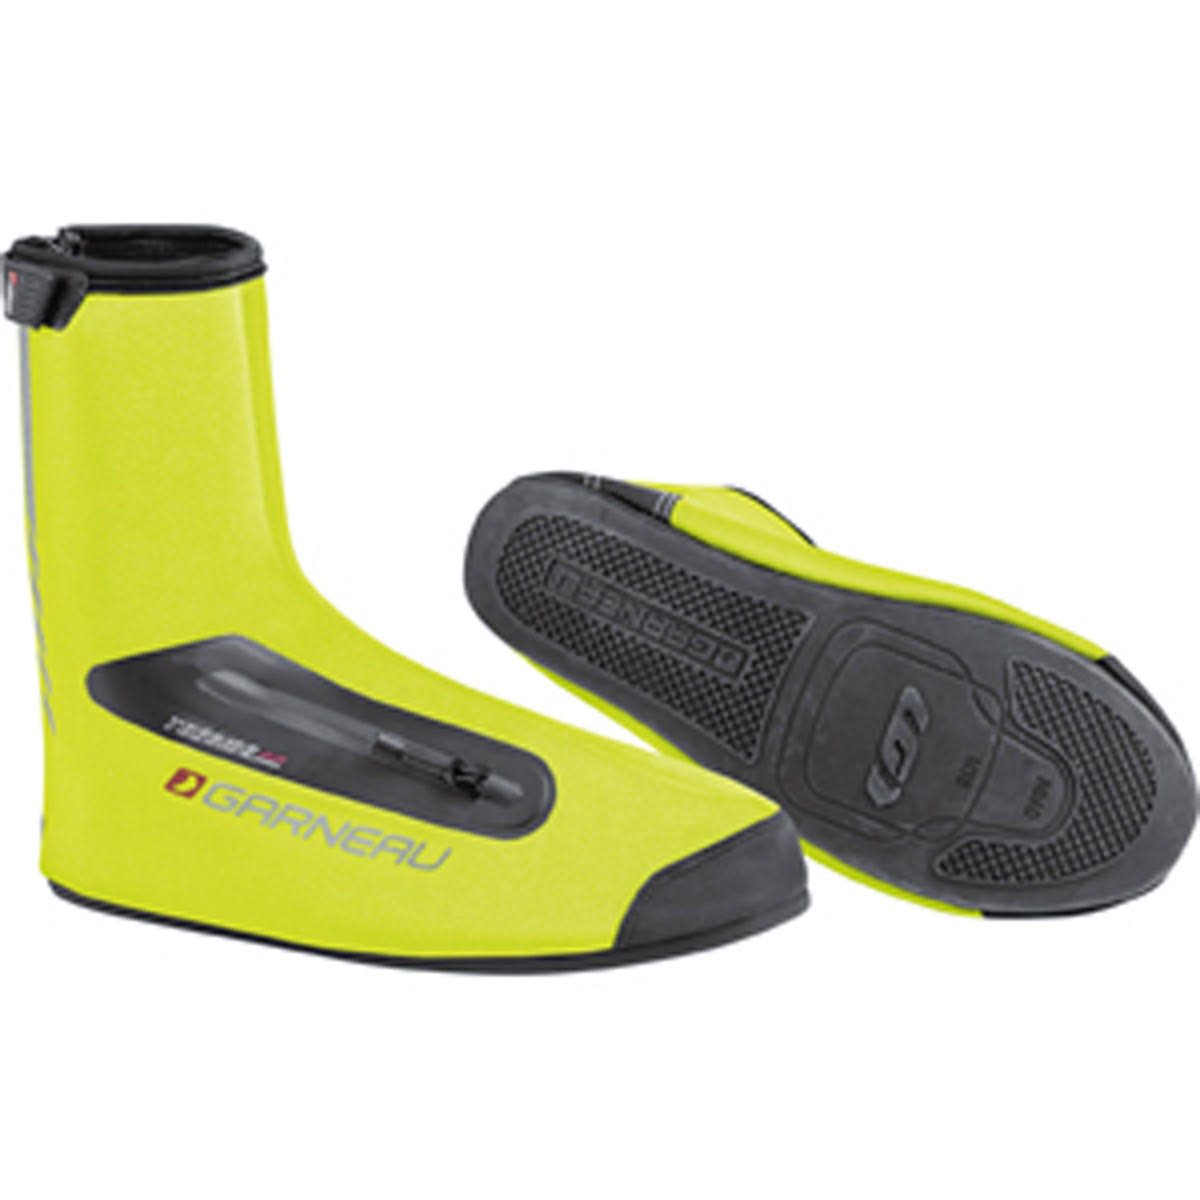 Louis Garneau Big Foot Shoe Cover Bright Yellow, M